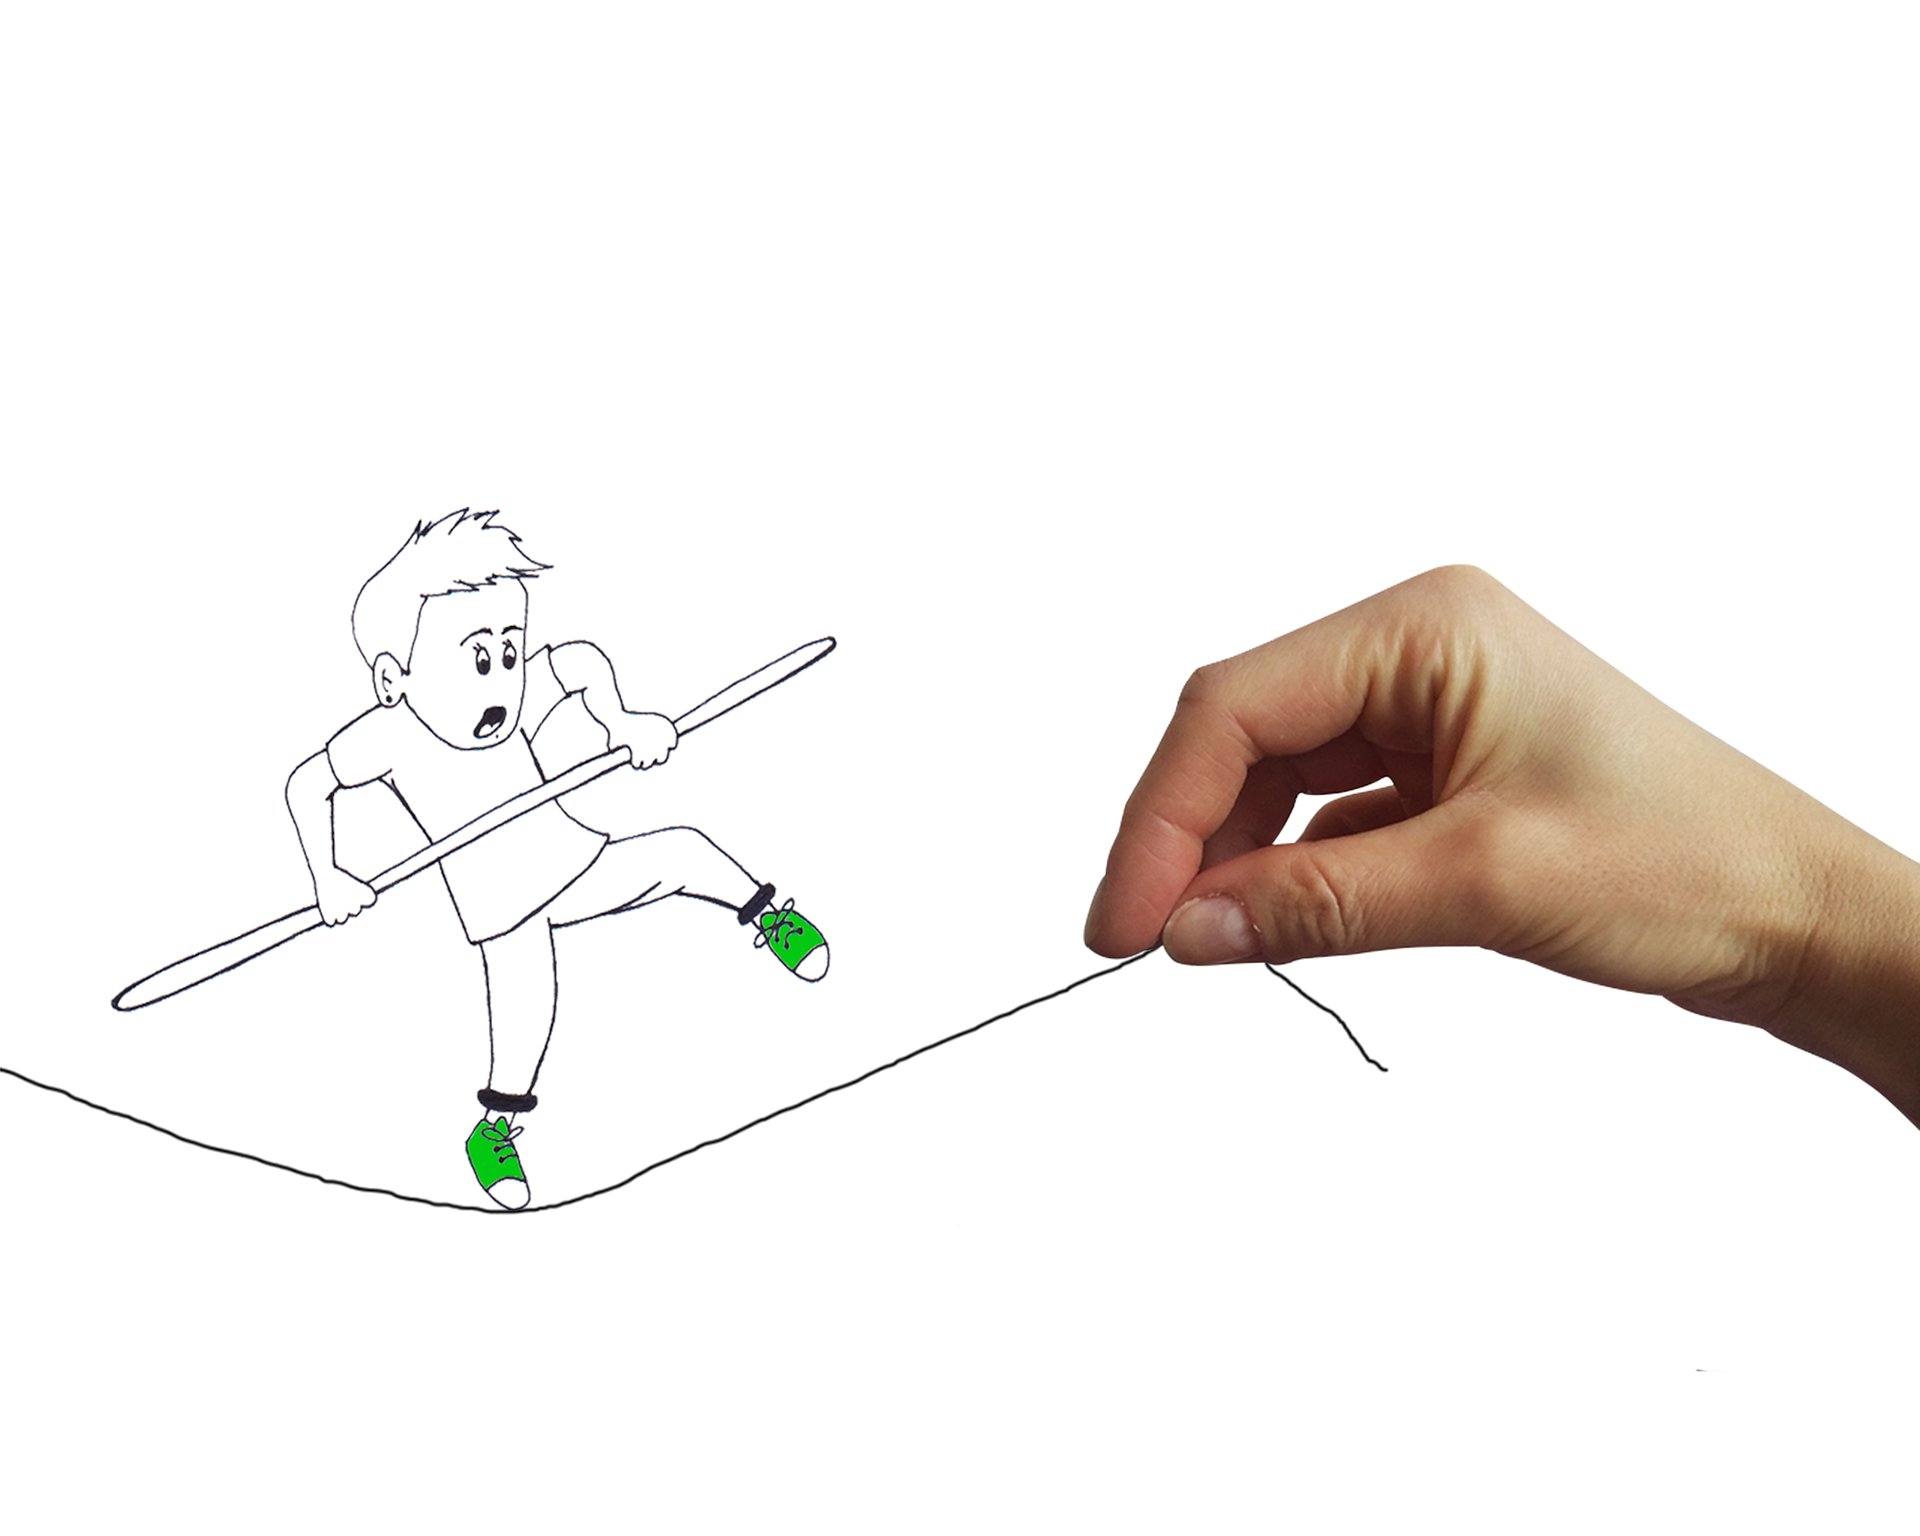 An animation being drawn